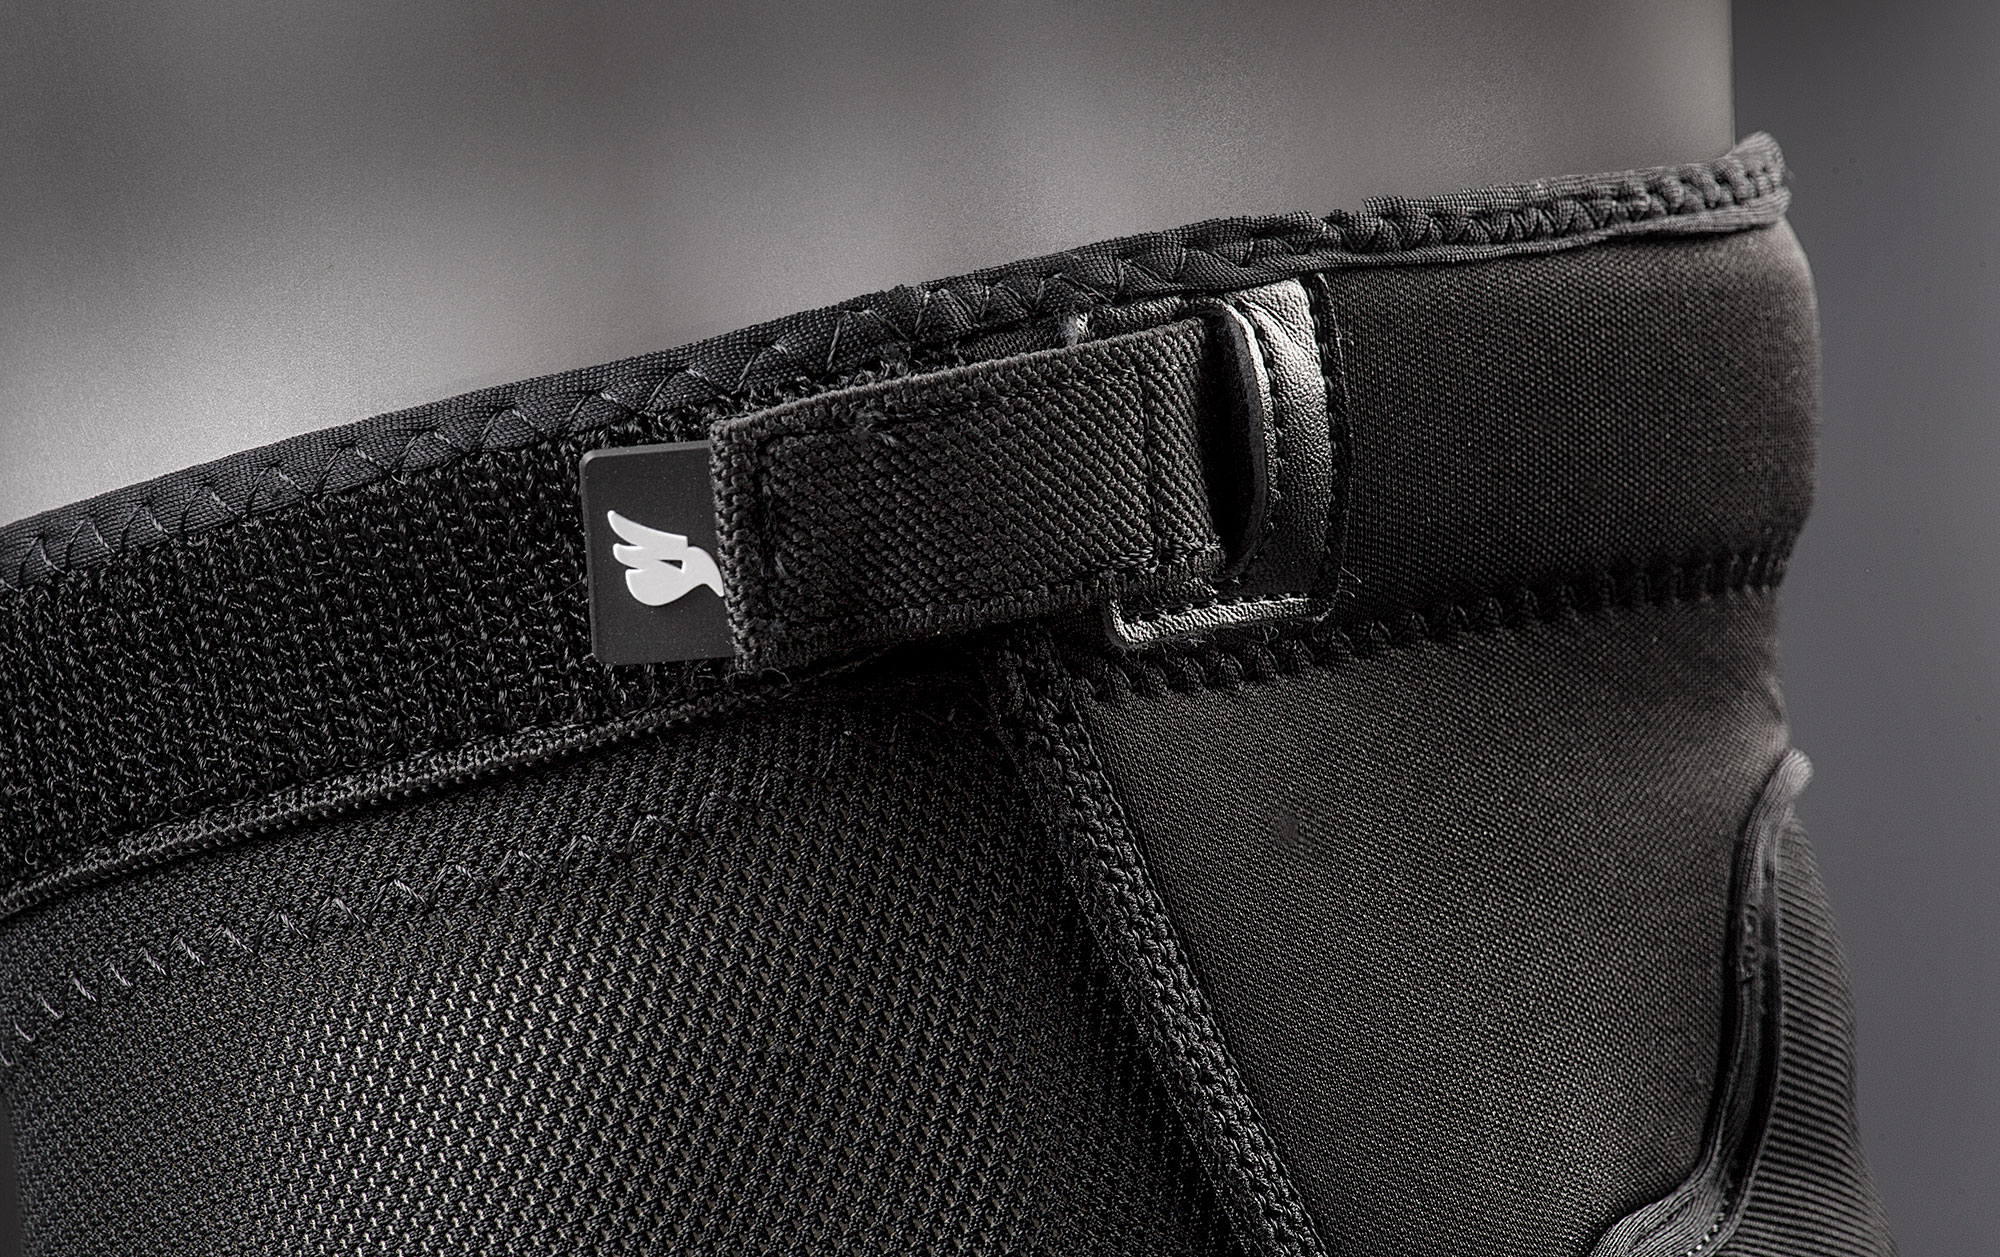 BLUEGRASS Solid Protection made for Mountain Bike, Enduro and E-Bike